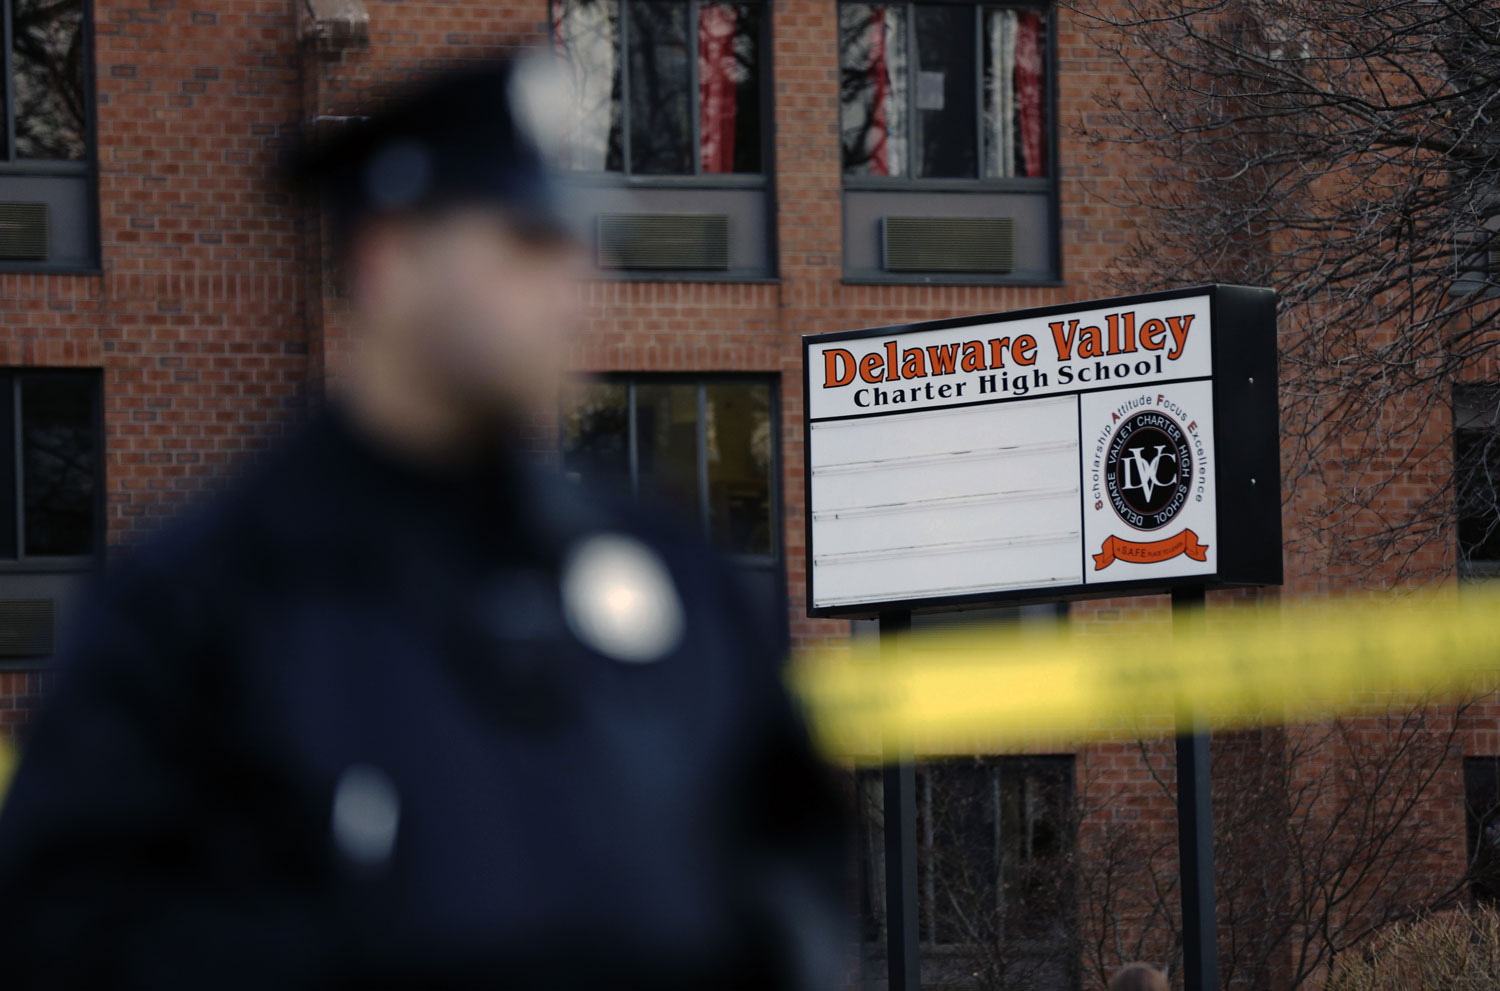 A-police-stands-by-caution-tape-at-the-Delaware-Valley-Charter-School-Friday-in-Philadelphia-where-two-students-were-shot-on-Jan.-17-2014.-AP-PhotoMatt-Rourke